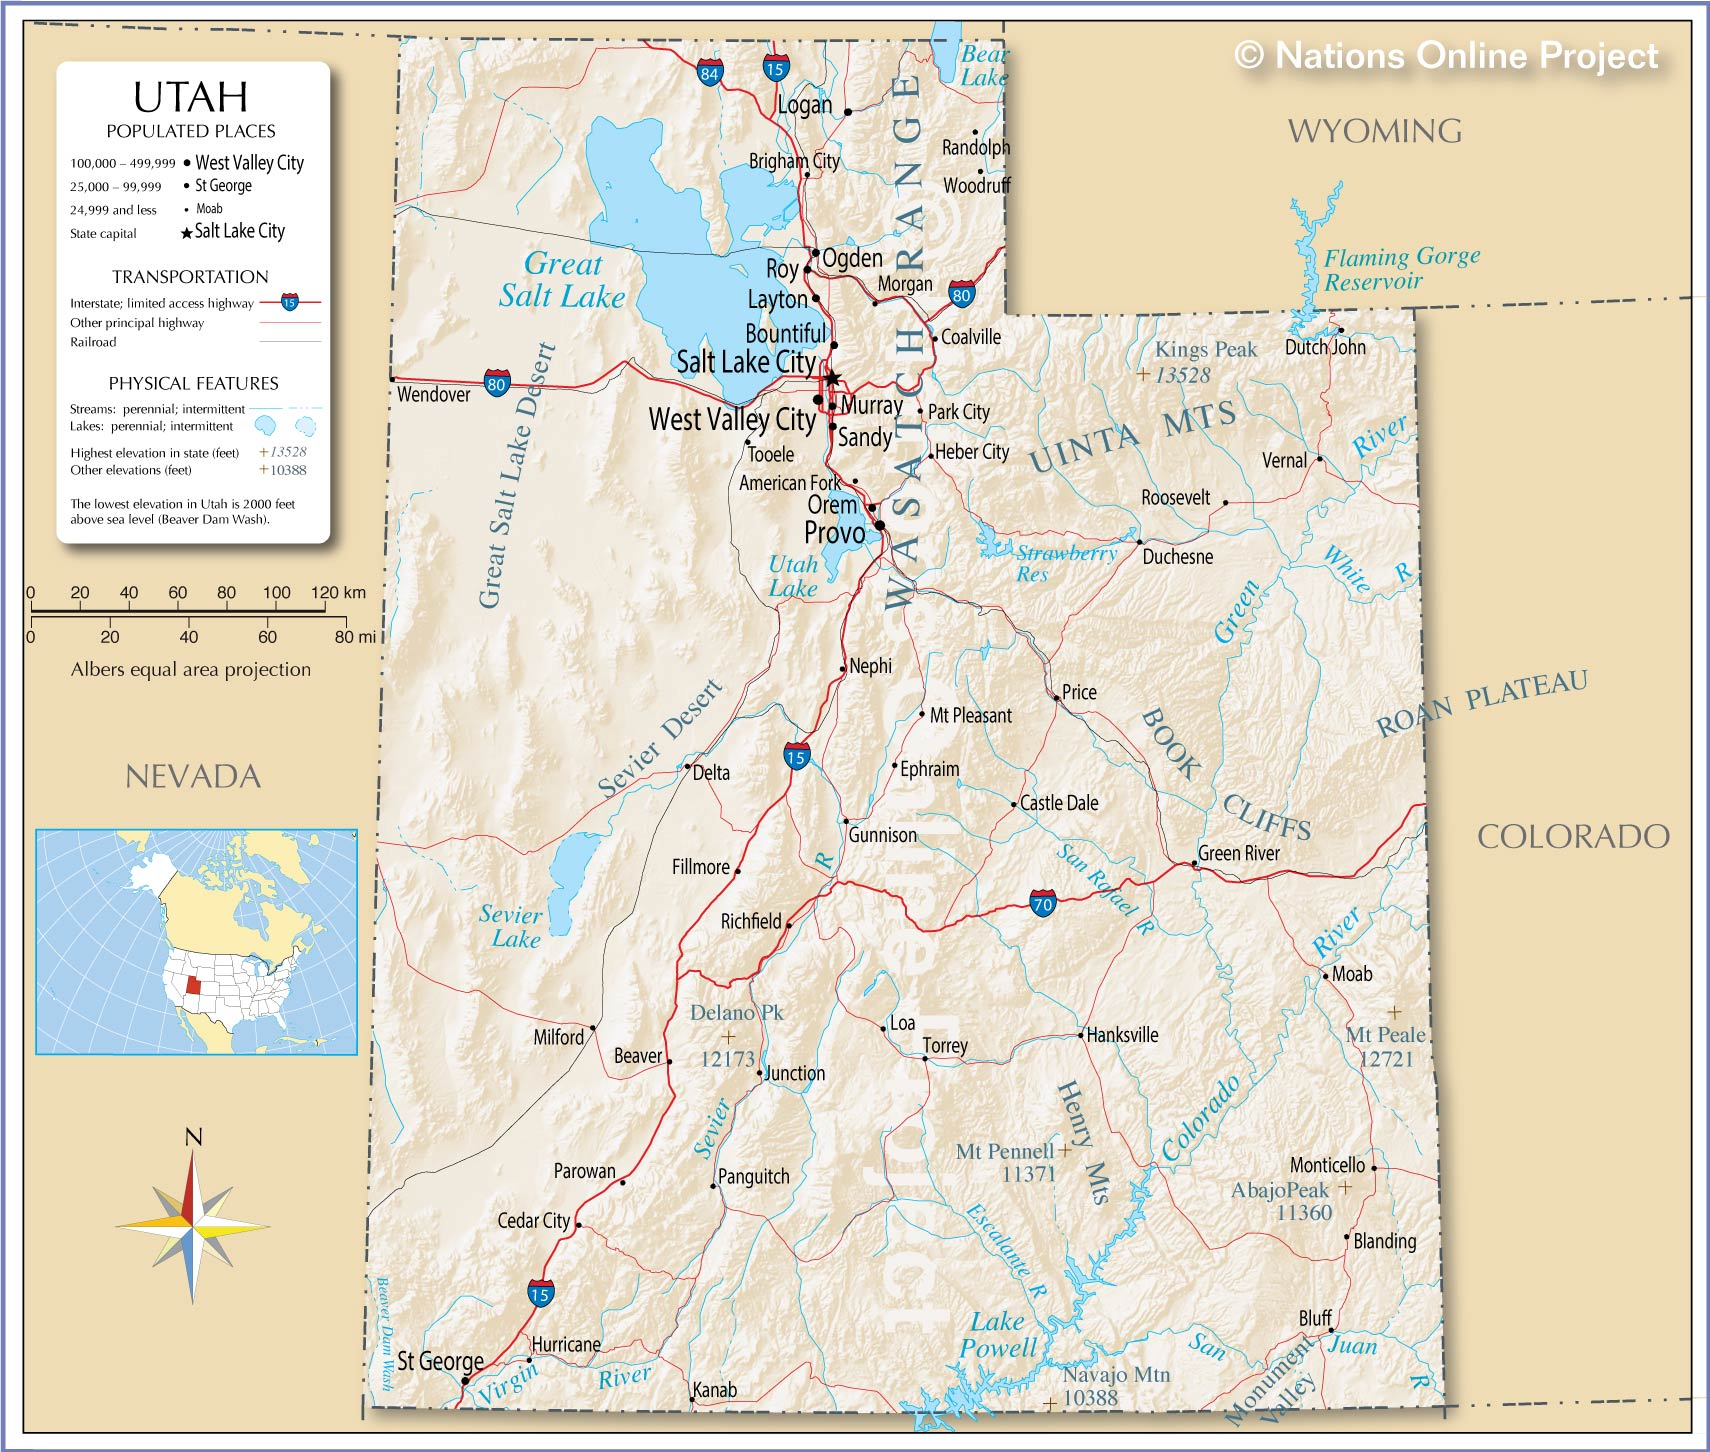 Reference Map Of Utah USA Nations Online Project - Usa map utah